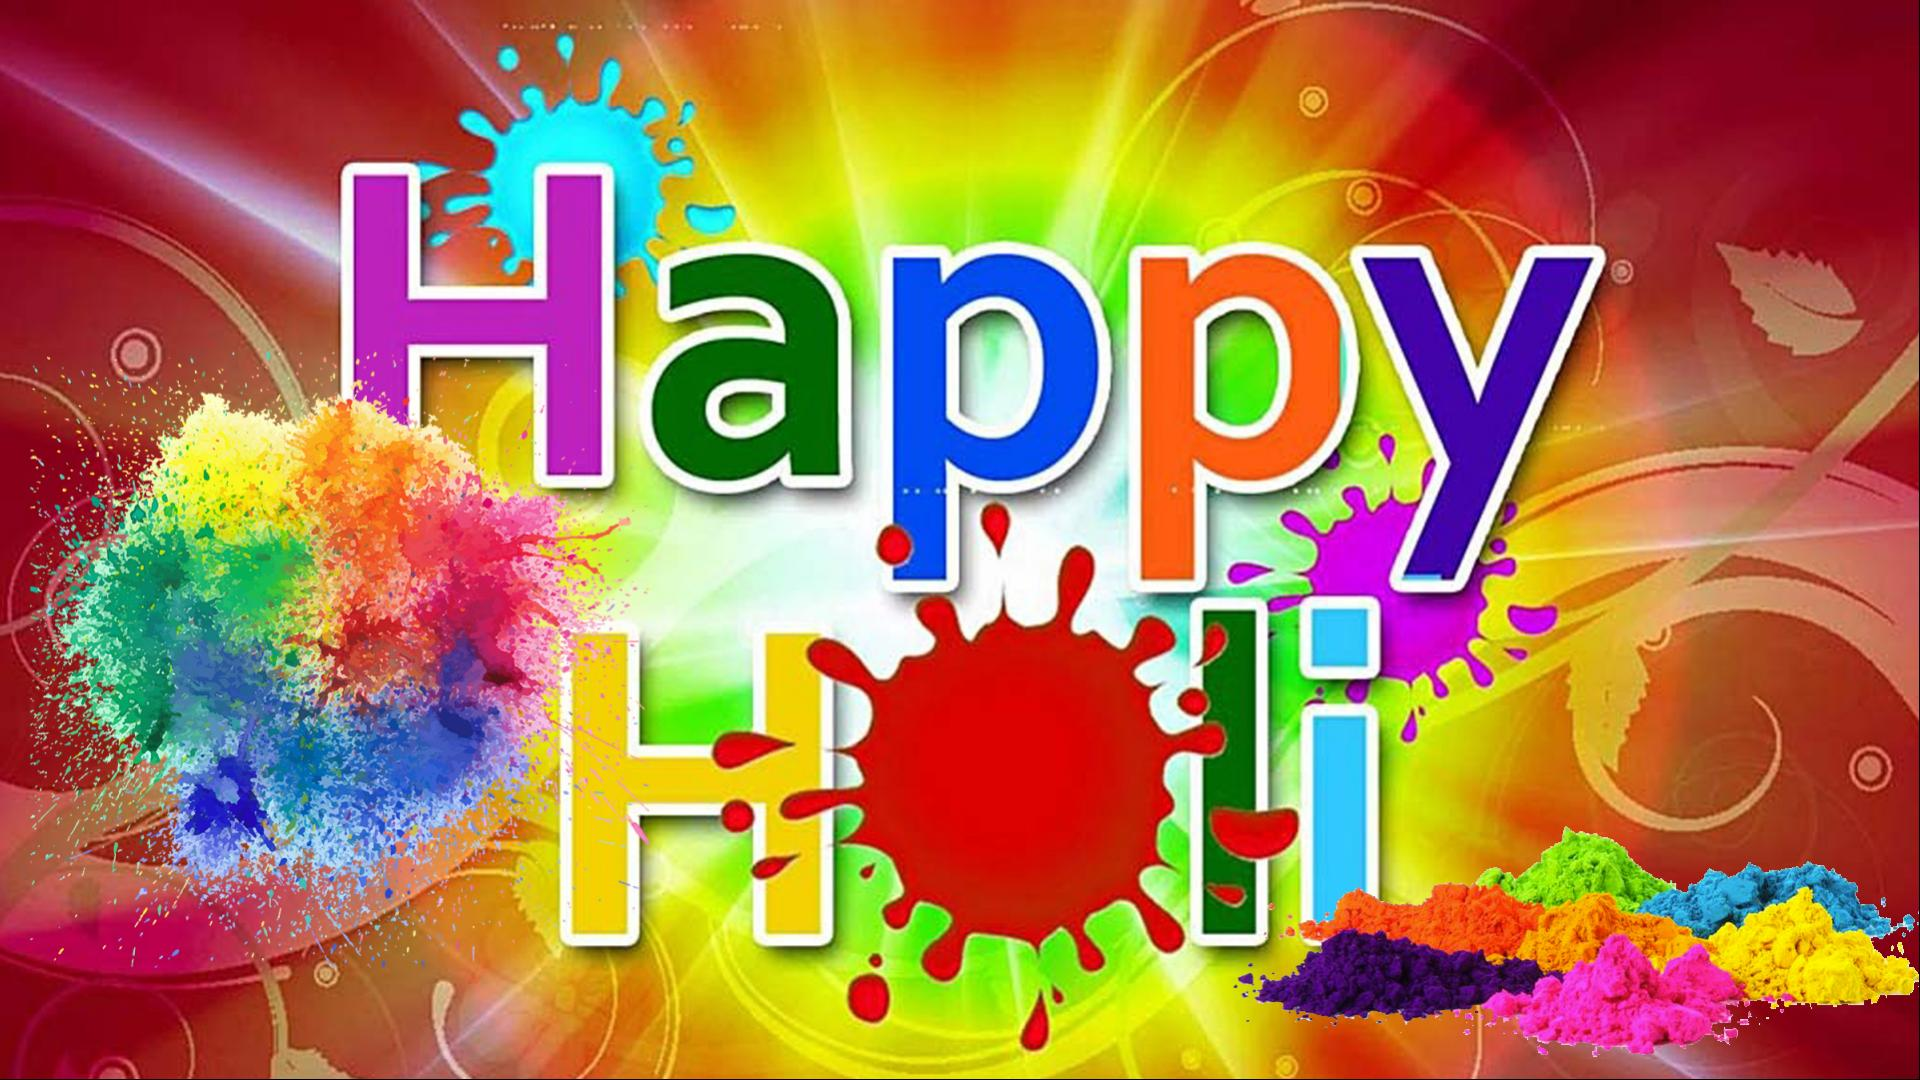 Holi Color Powder Wallpaper For Party Background Hd Wallpapers